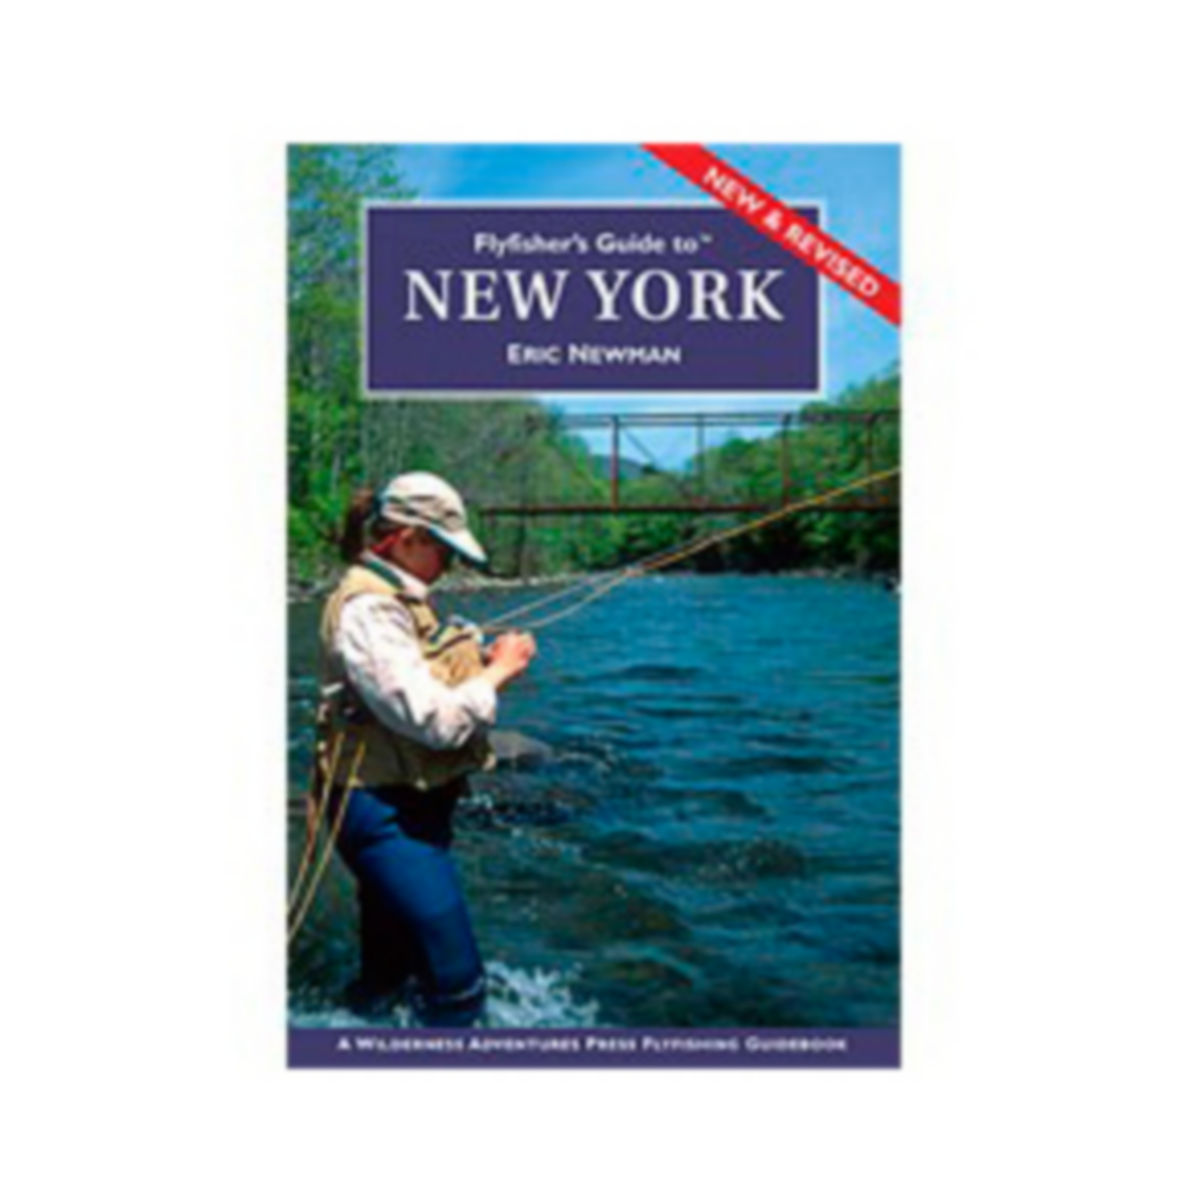 Flyfisher's Guide to New York - image number 0